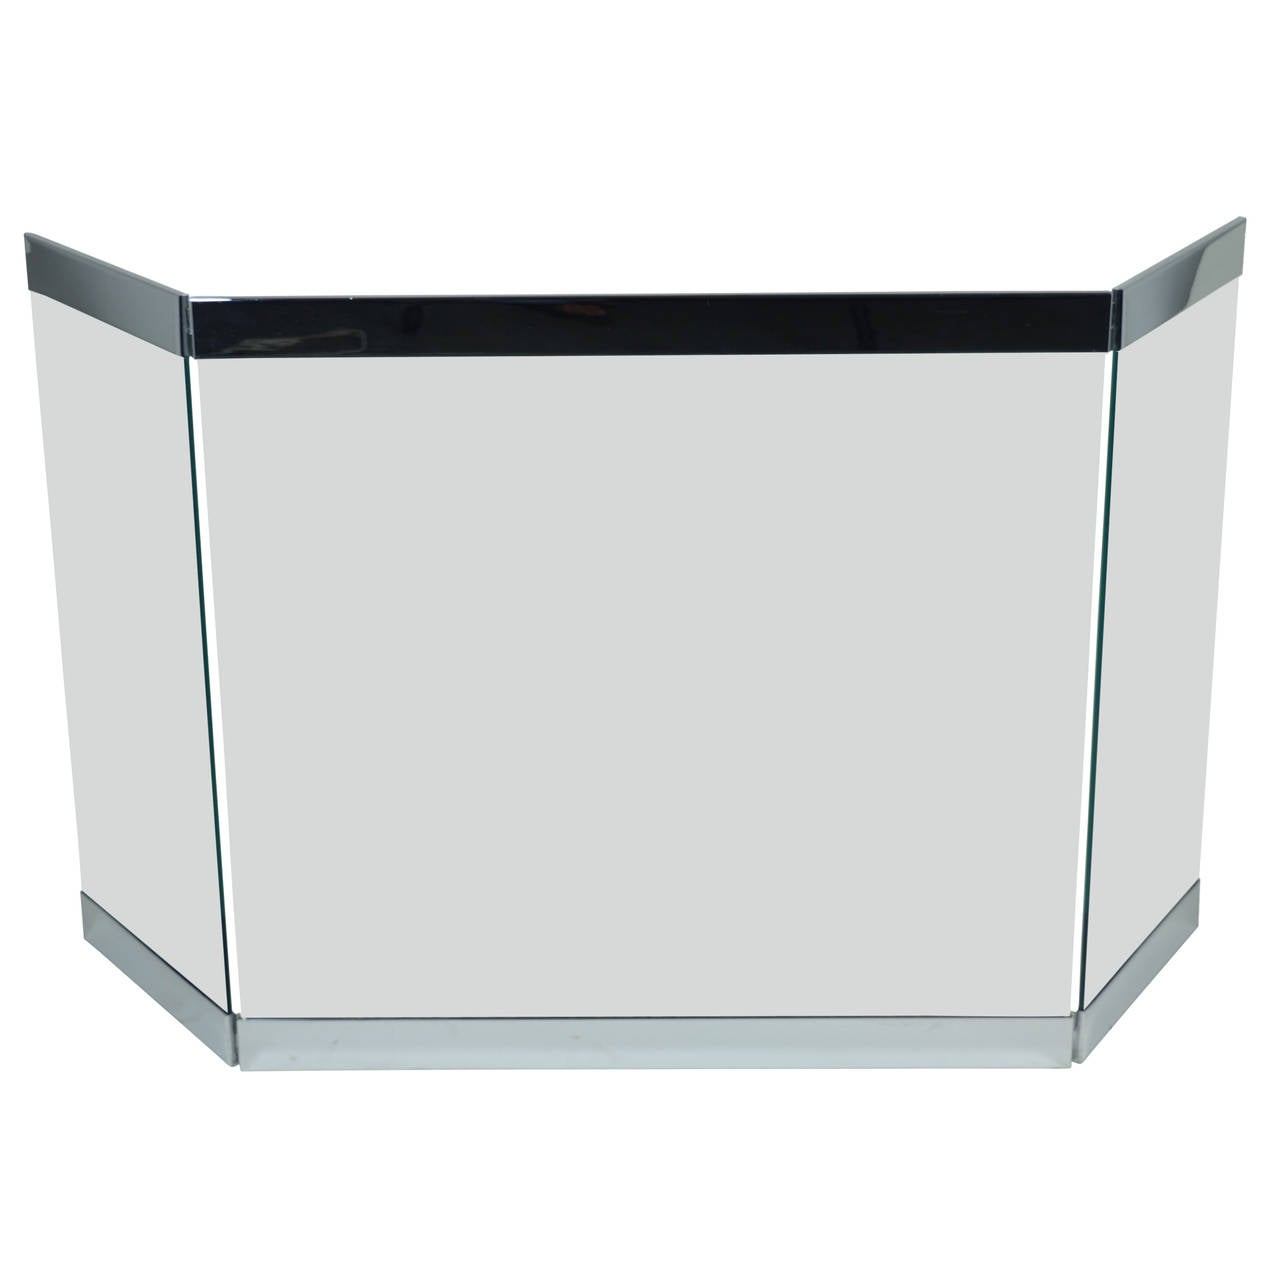 this modernist chrome and glass fire screen is no longer available